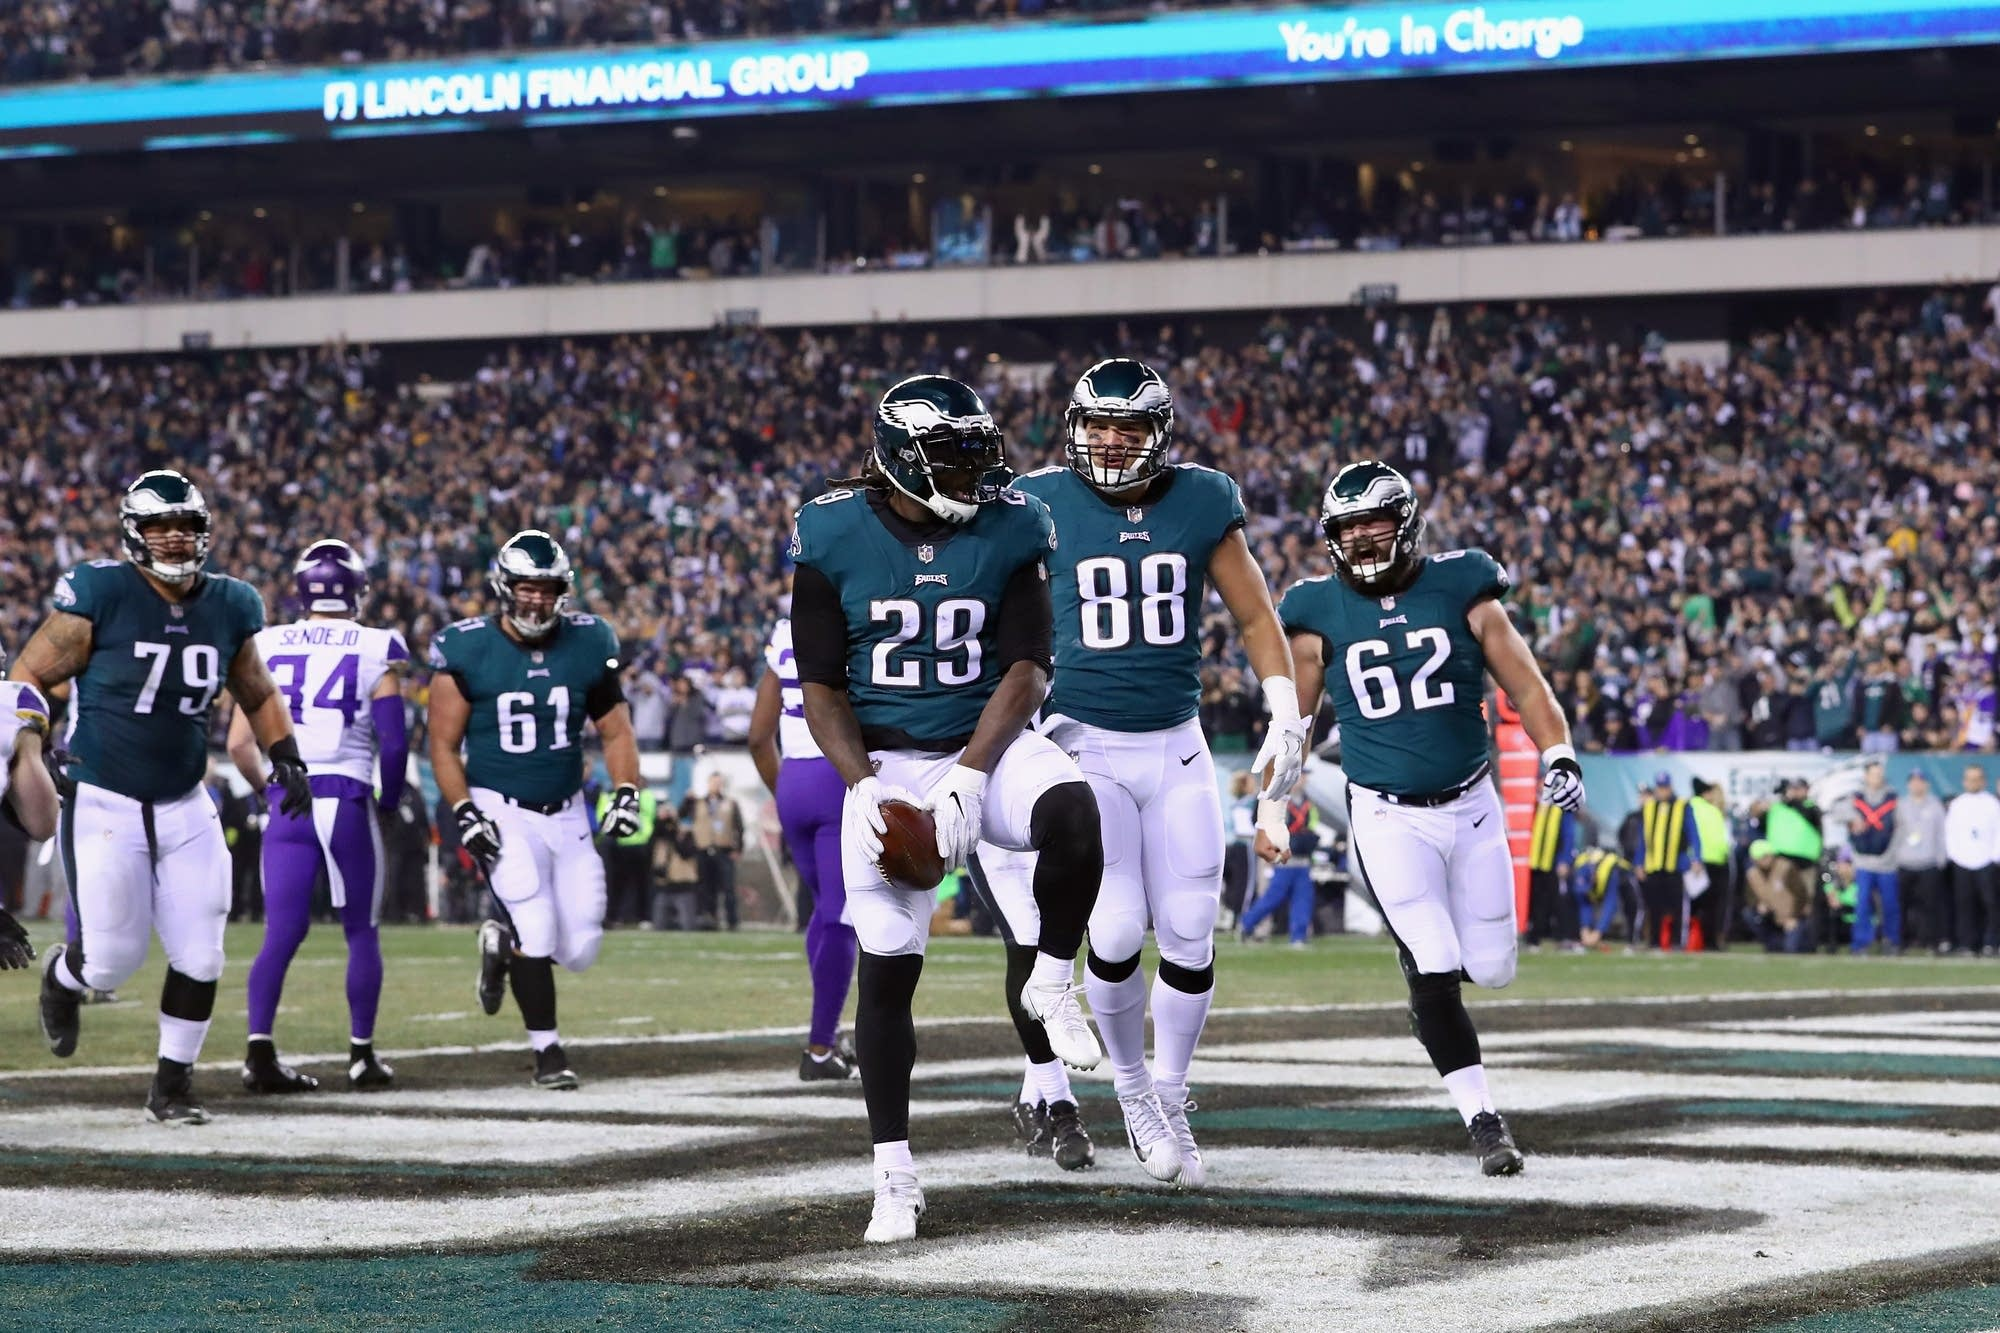 LeGarrette Blount (29) of the Eagles is congratulated by his teammates.